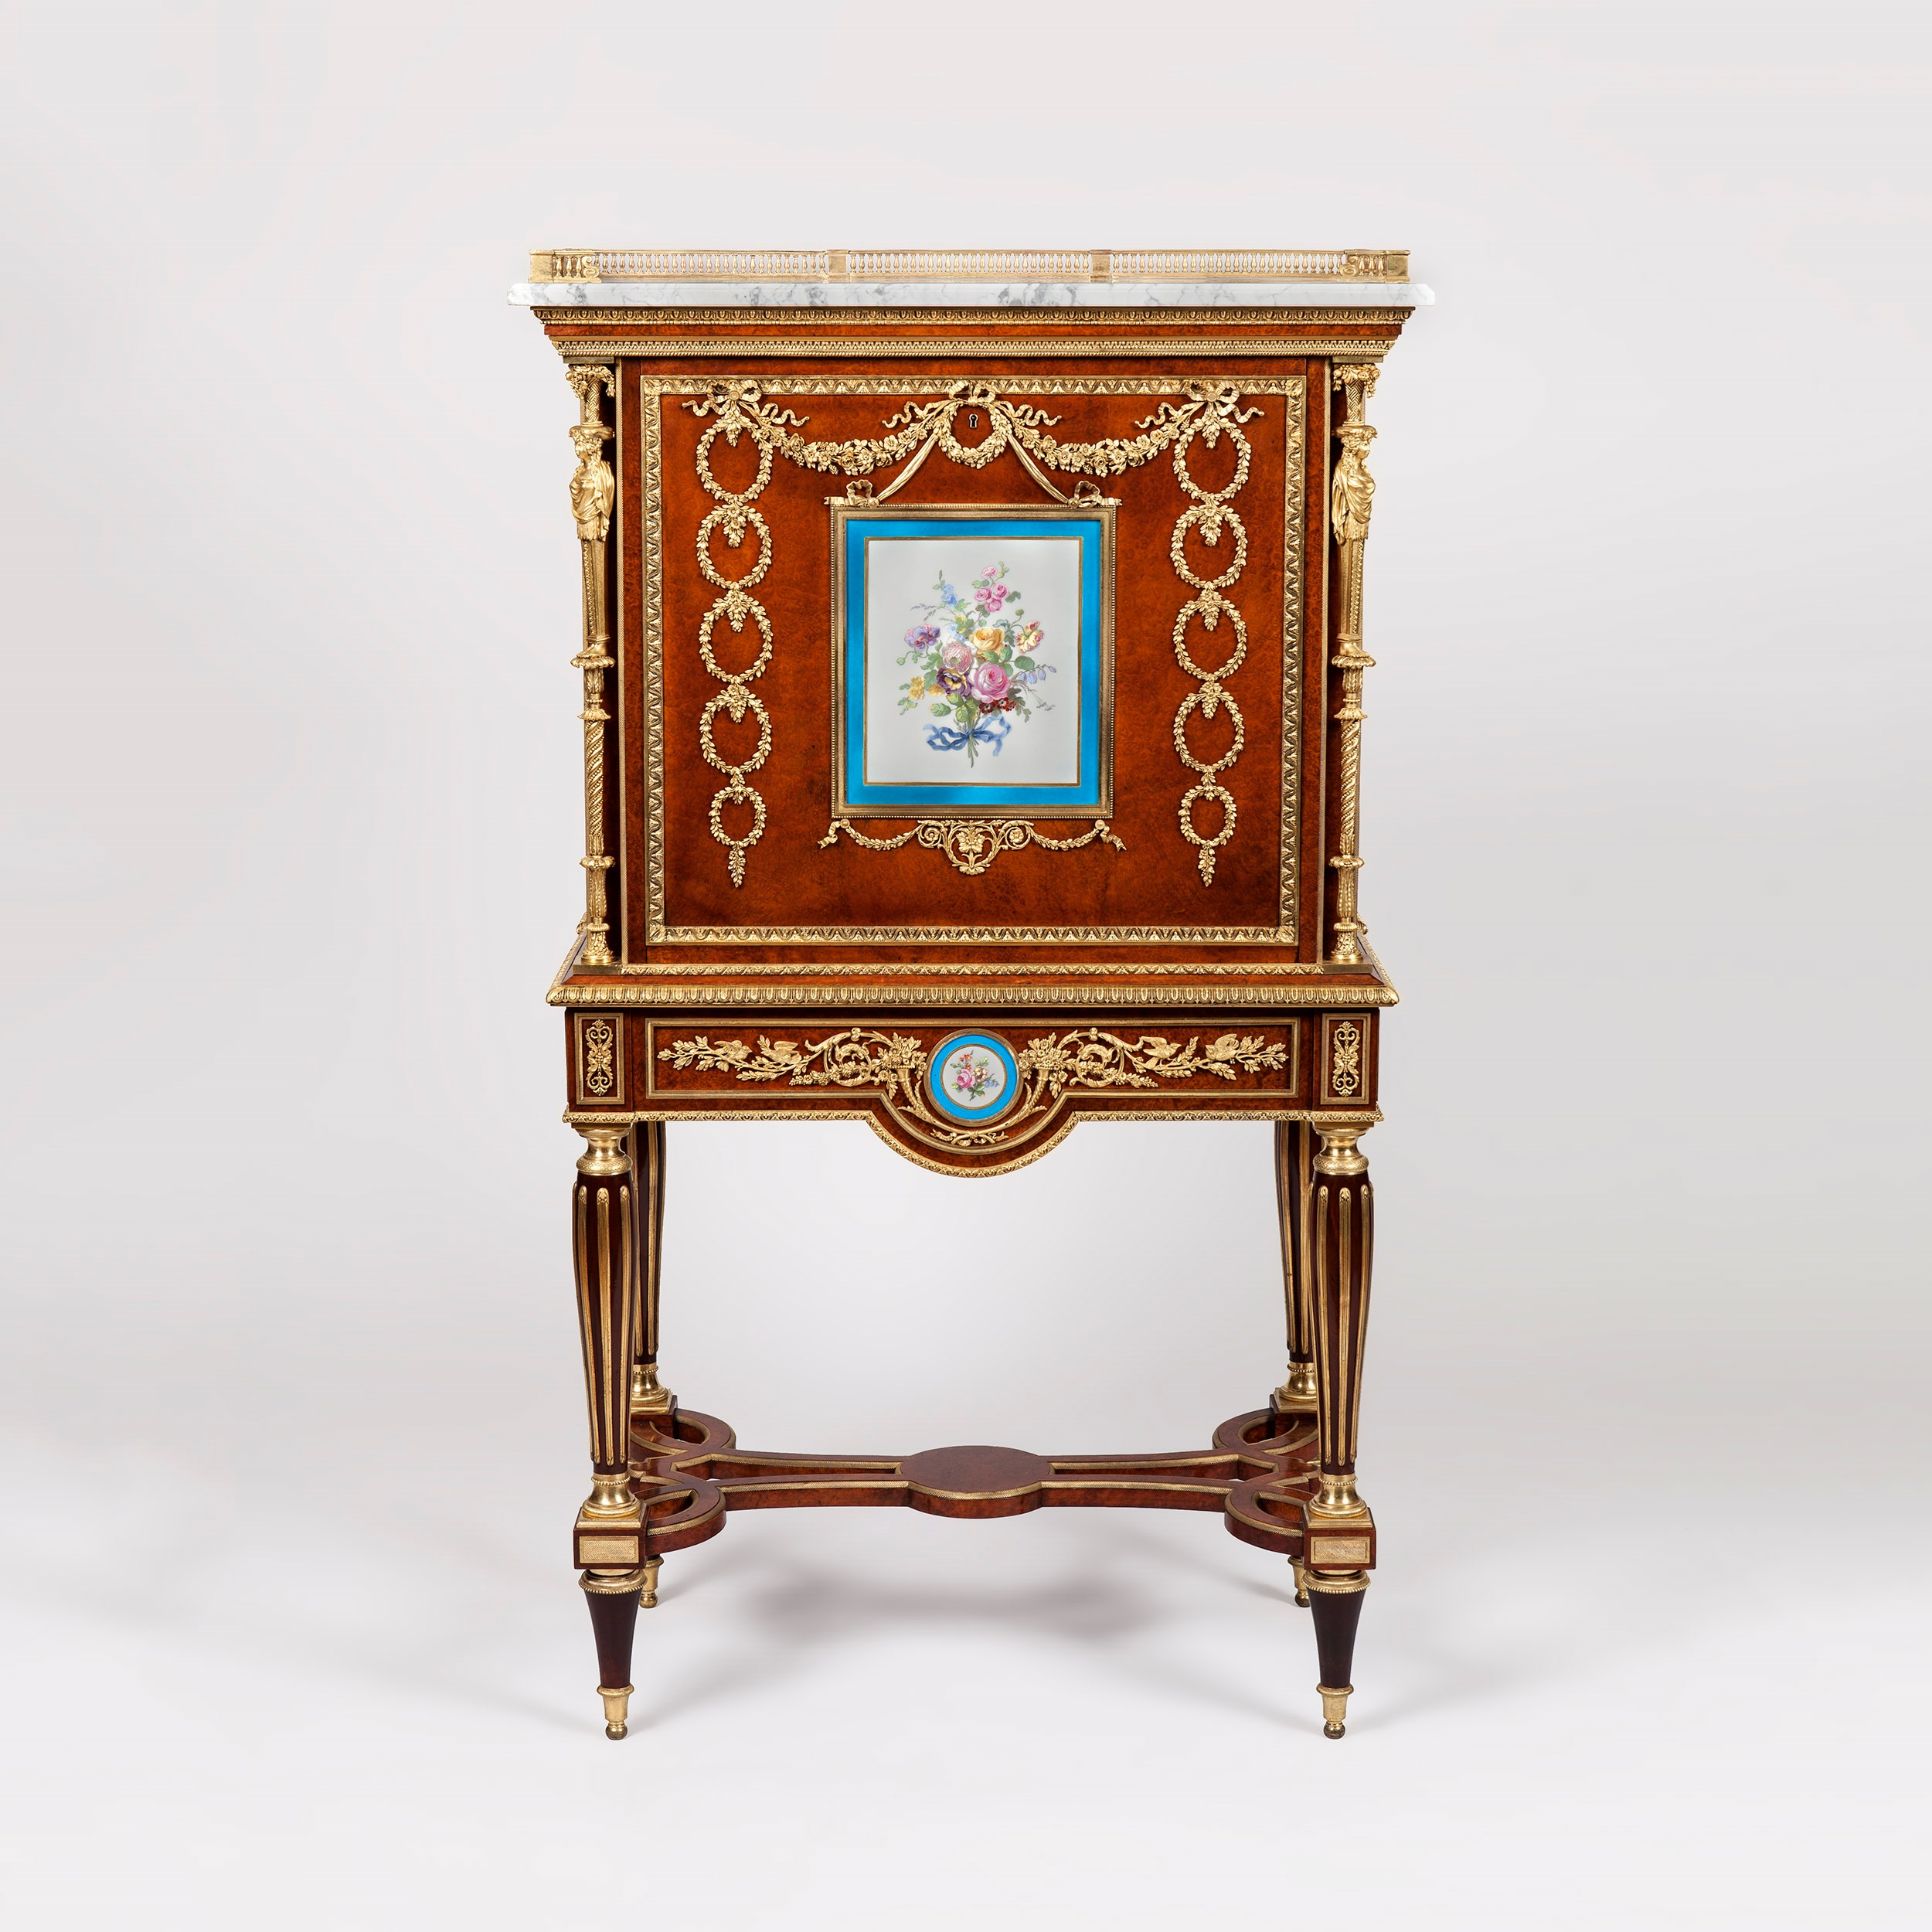 A Fine Escritoire After a Design by Adam Weisweiler  Constructed in amboyna, dressed with 'Sevres' porcelain plaques and gilt bronze mounts; rising from tapering circular legs, inlaid with brass, having bronze bases and capitols, and conjoined with an interlaced stretcher; the shaped apron, having a circular porcelain plaque and bronze foliates, houses a single cedar lined drawer, spring released by a concealed button; over, the secretaire, the drop flap fitted with a French lock, has a square bronze framed Sevres plaque, hand painted with roses within a  'bleu celeste' and gilt reserve, and extensive entrelac foliates, opens to reveal a fiddle back satinwood interior, fitted with an arrangement of three upper short drawers, and a lower single drawer, fitted with ring pulls; gilt bronze caryatids, in the form of festooned Grecian maids bearing baskets of flowers flank the fall-front, and the panelled sides are set with stiff leaf gilt bronze castings, and over, a thumb nail moulded white marble top is dressed with a three quarter arcaded bronze gallery. France, Circa 1870  Dimensions: H: 54 in / 137 cm  |  W: 32 in / 81 cm  |  D: 17 in / 43 cm  Provenance Christie Manson & Wood sale of pieces from the late Edward Huntley Walker and Edward Wertheimer collection, 1932, lot 43   The Metropolitan Museum of Art has in its collection a similar secrétaire à abattant attributed to Weisweiler, circa 1787 (accession no. 58.75.57). It is presumed that this was piece was originally located at Versailles and owned by Marie-Antoinette. After the angry mobs stormed Versailles in 1789, the royal family lived under house arrest in the Chateau des Tuileries. During this time the queen consigned her treasured possessions for safekeeping. An inventory of 1794 indicating royal seized furniture records a 'secretary with drop front, mounted with a large Sèvres plaque and ten medallions forming garlands.'   Our escritoire is of similar form to the model in the Metropolitan Museum of Art, particularly with the loop form stretcher and gilt cluster colonettes, and decorative design of the central large blue Sèvres plaque and ten gilt medallions. Another very similar escritoire is illustrated on pp 29 of Segoura's 'Weisweiler', cf.